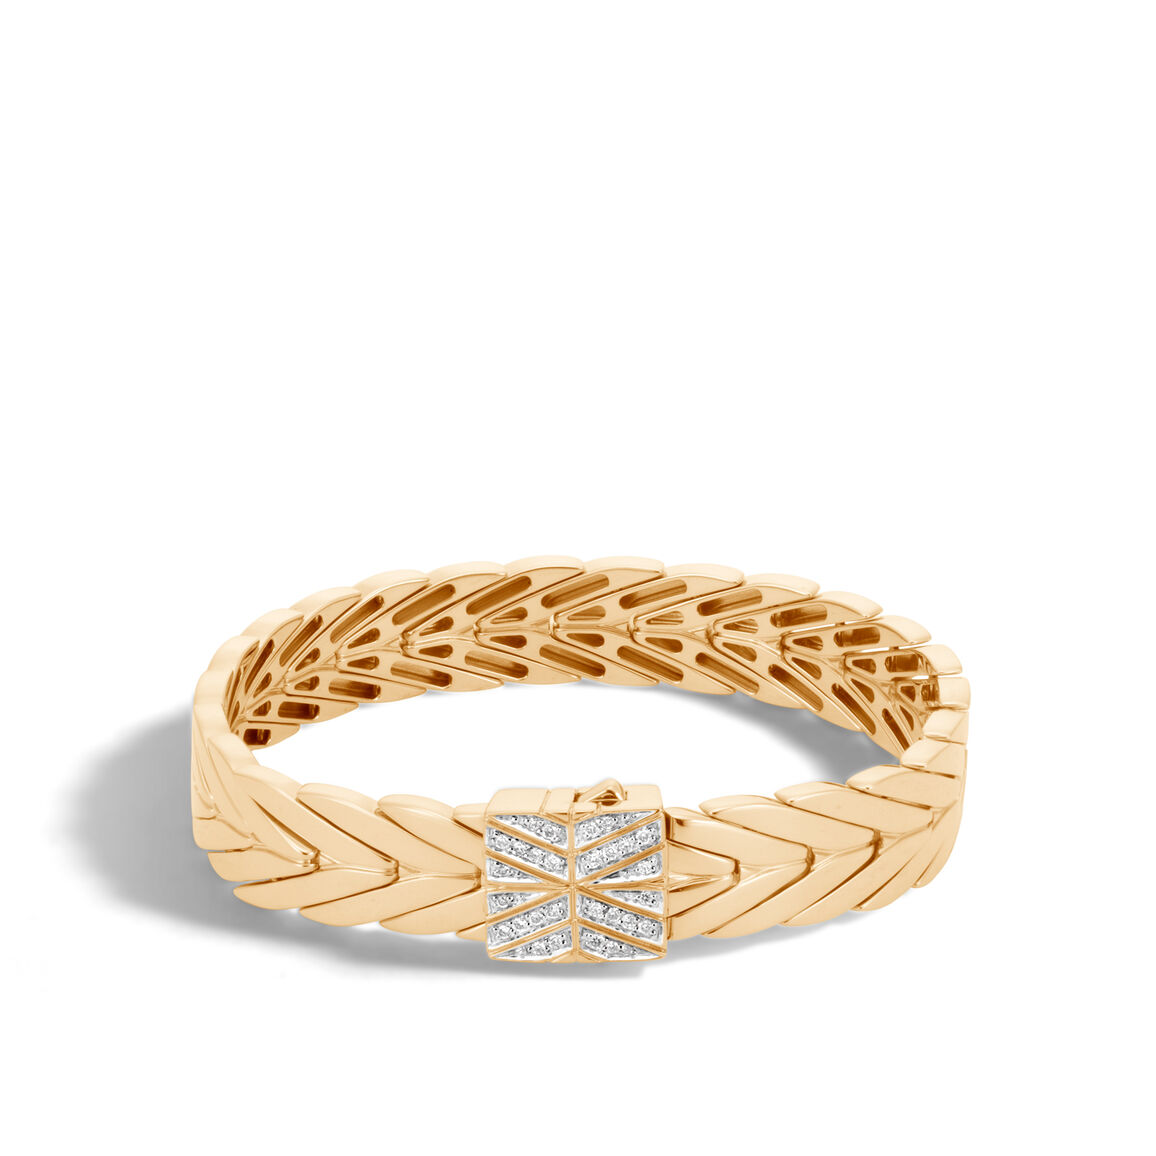 Modern Chain 11MM Bracelet in 18K Gold with Diamonds